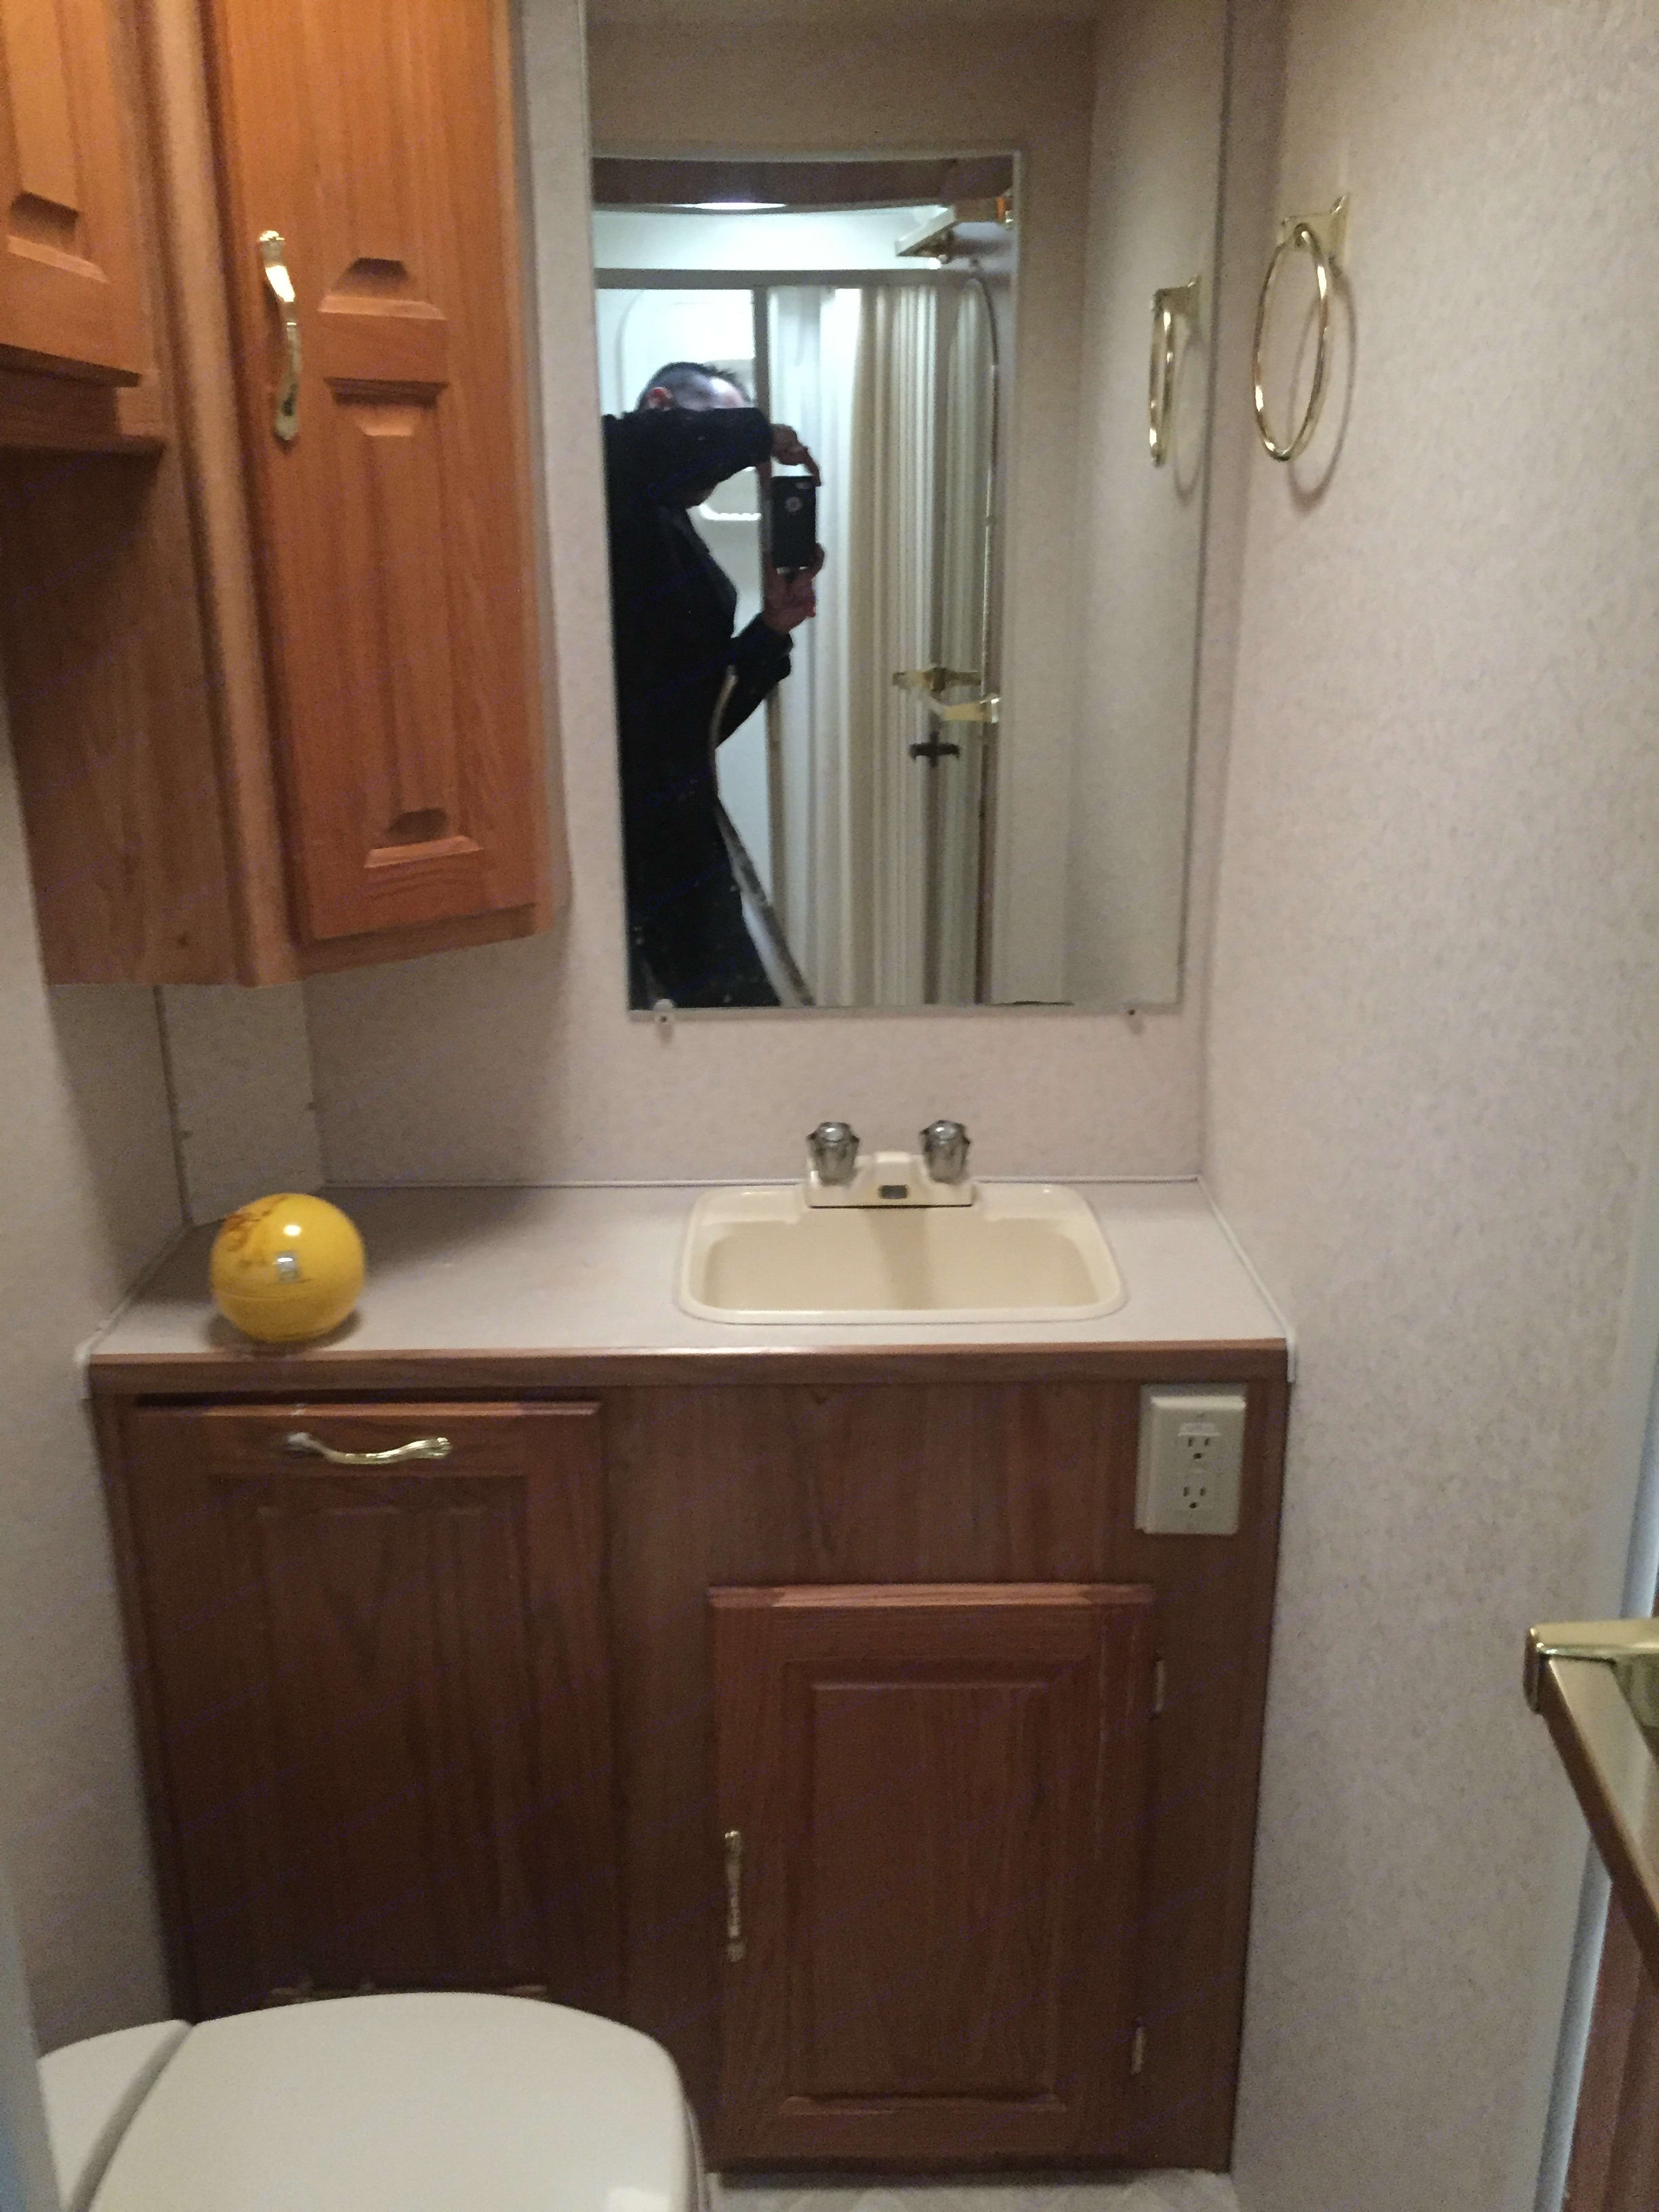 Did I mention that your bathroom has its own sink and mirror so that way you can get prepped for your event or for your outing for that perfect photo… Be prepared for the memories that will last a lifetime. coachman Santara 2001